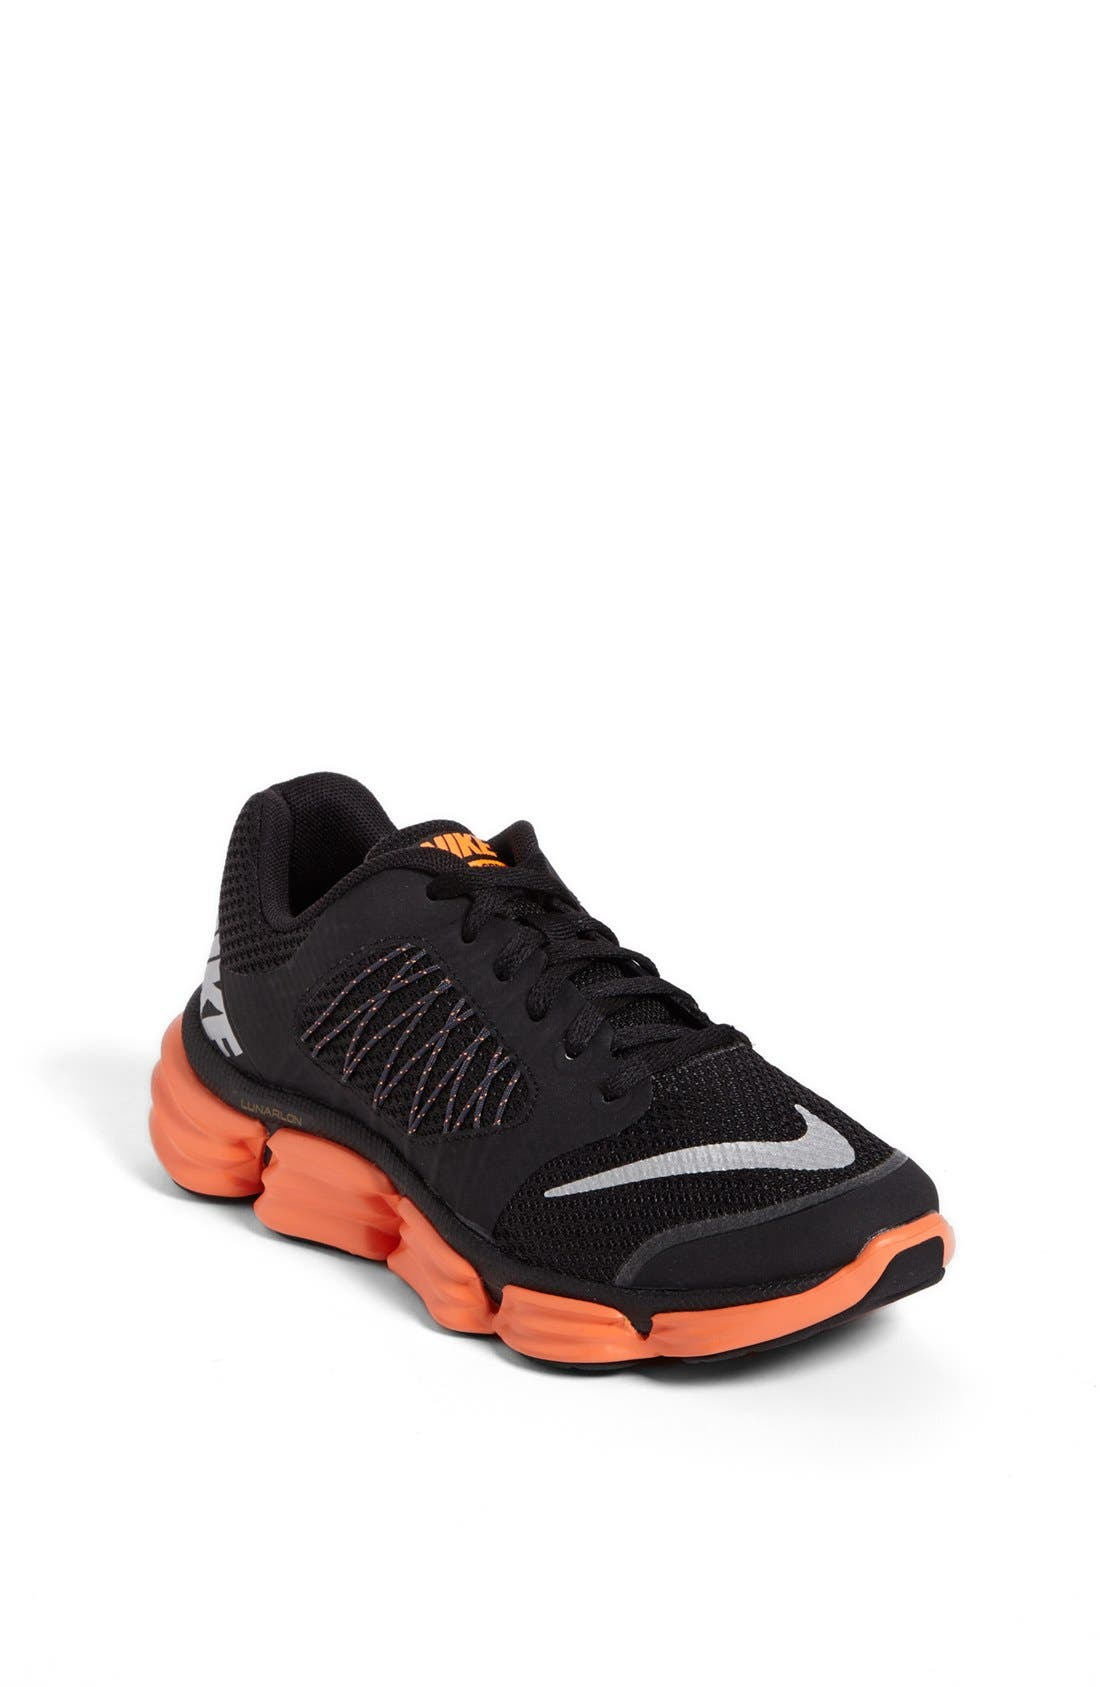 Alternate Image 1 Selected - Nike 'Lunarsprint' Running Shoe (Big Kid)